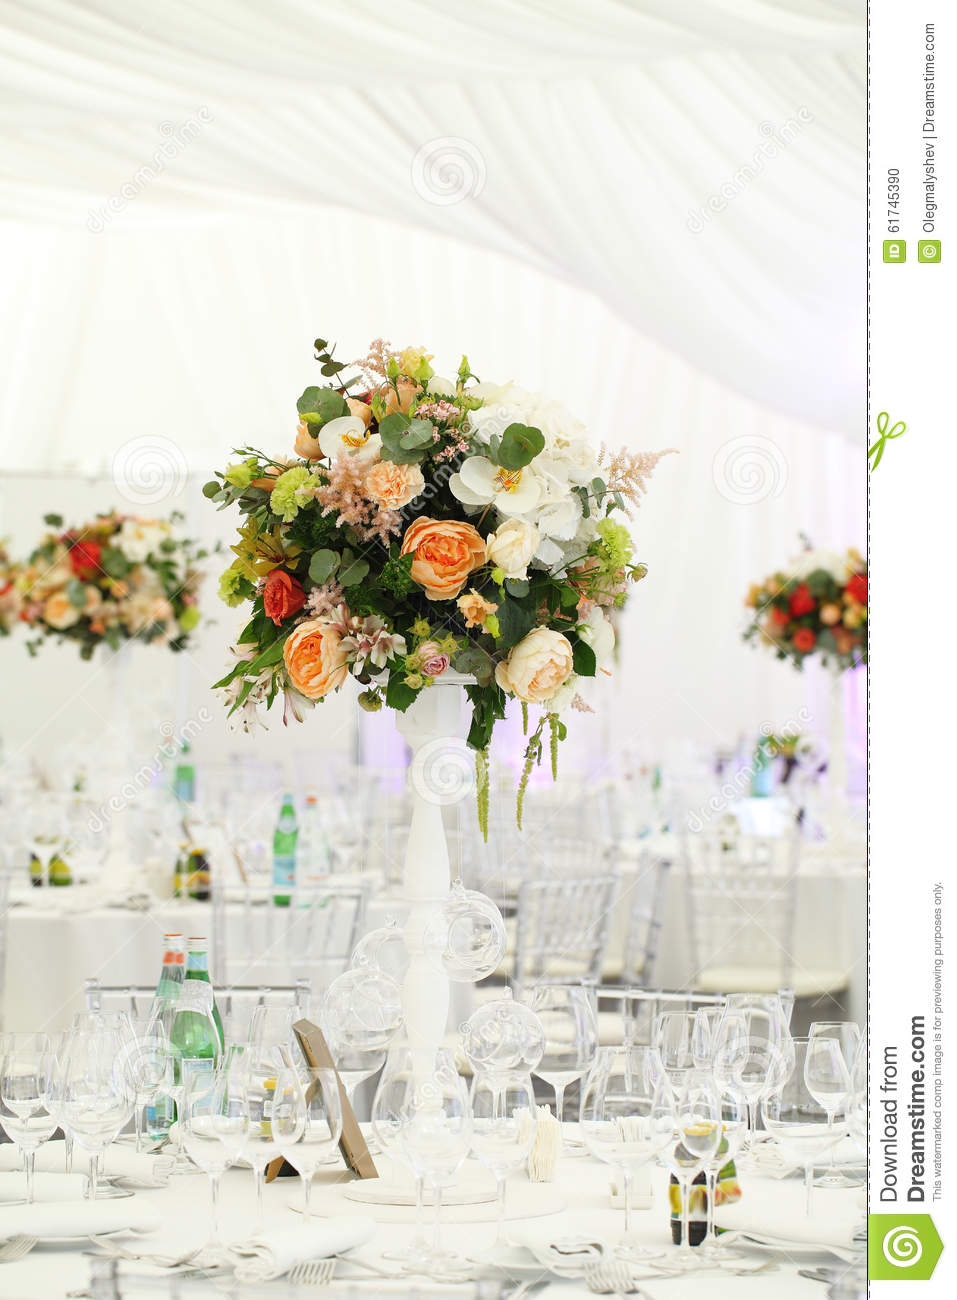 Floral Arrangement Wedding Tent White Canopy Stock Photo - Image of ...